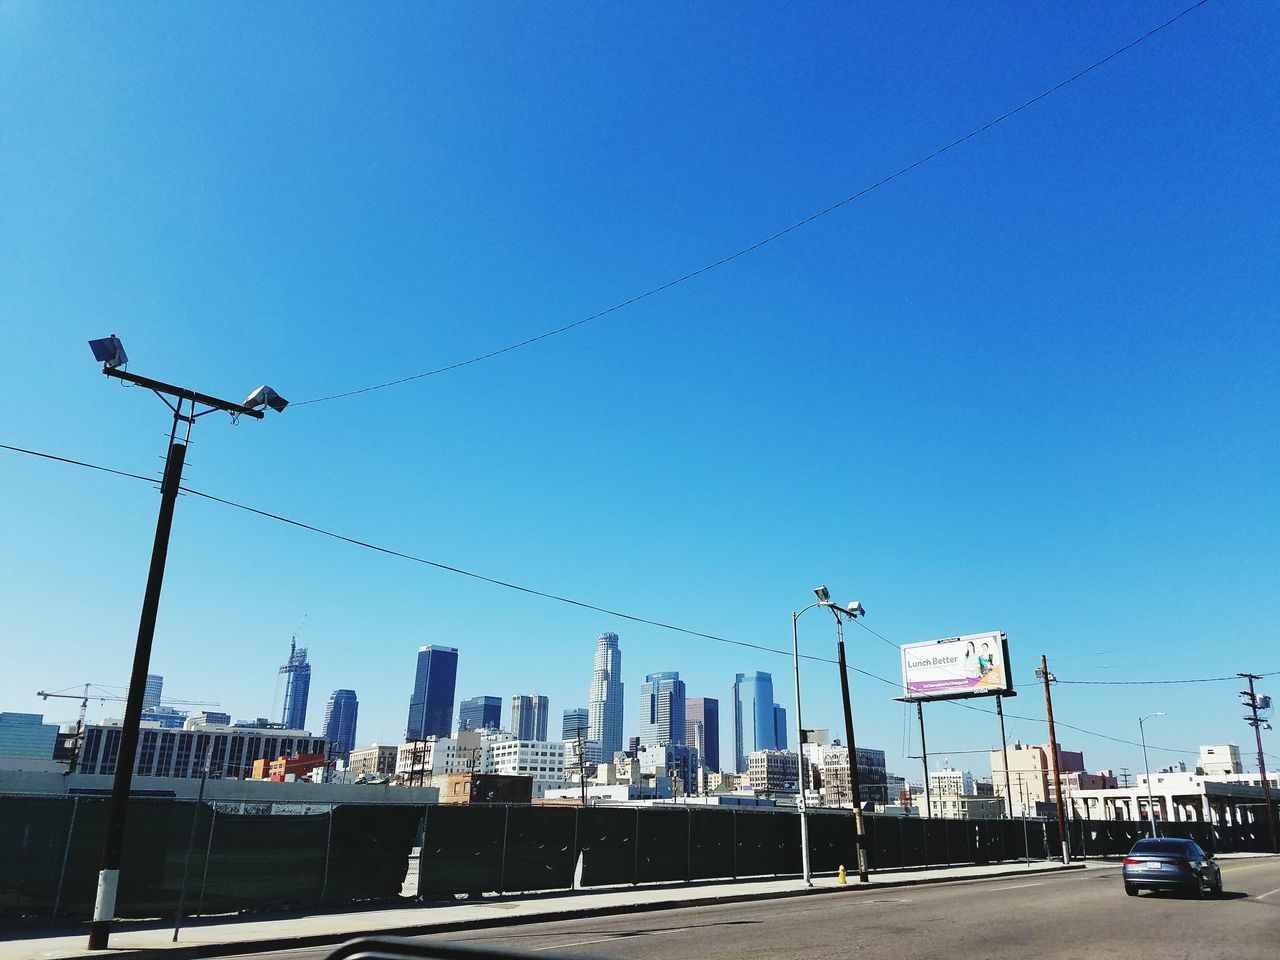 lost angeles lives Losangeles Losangeles_la Conquer_la Dtla Art District DTLA Skyline Hello World Check This Out Taking Photos Enjoying Life